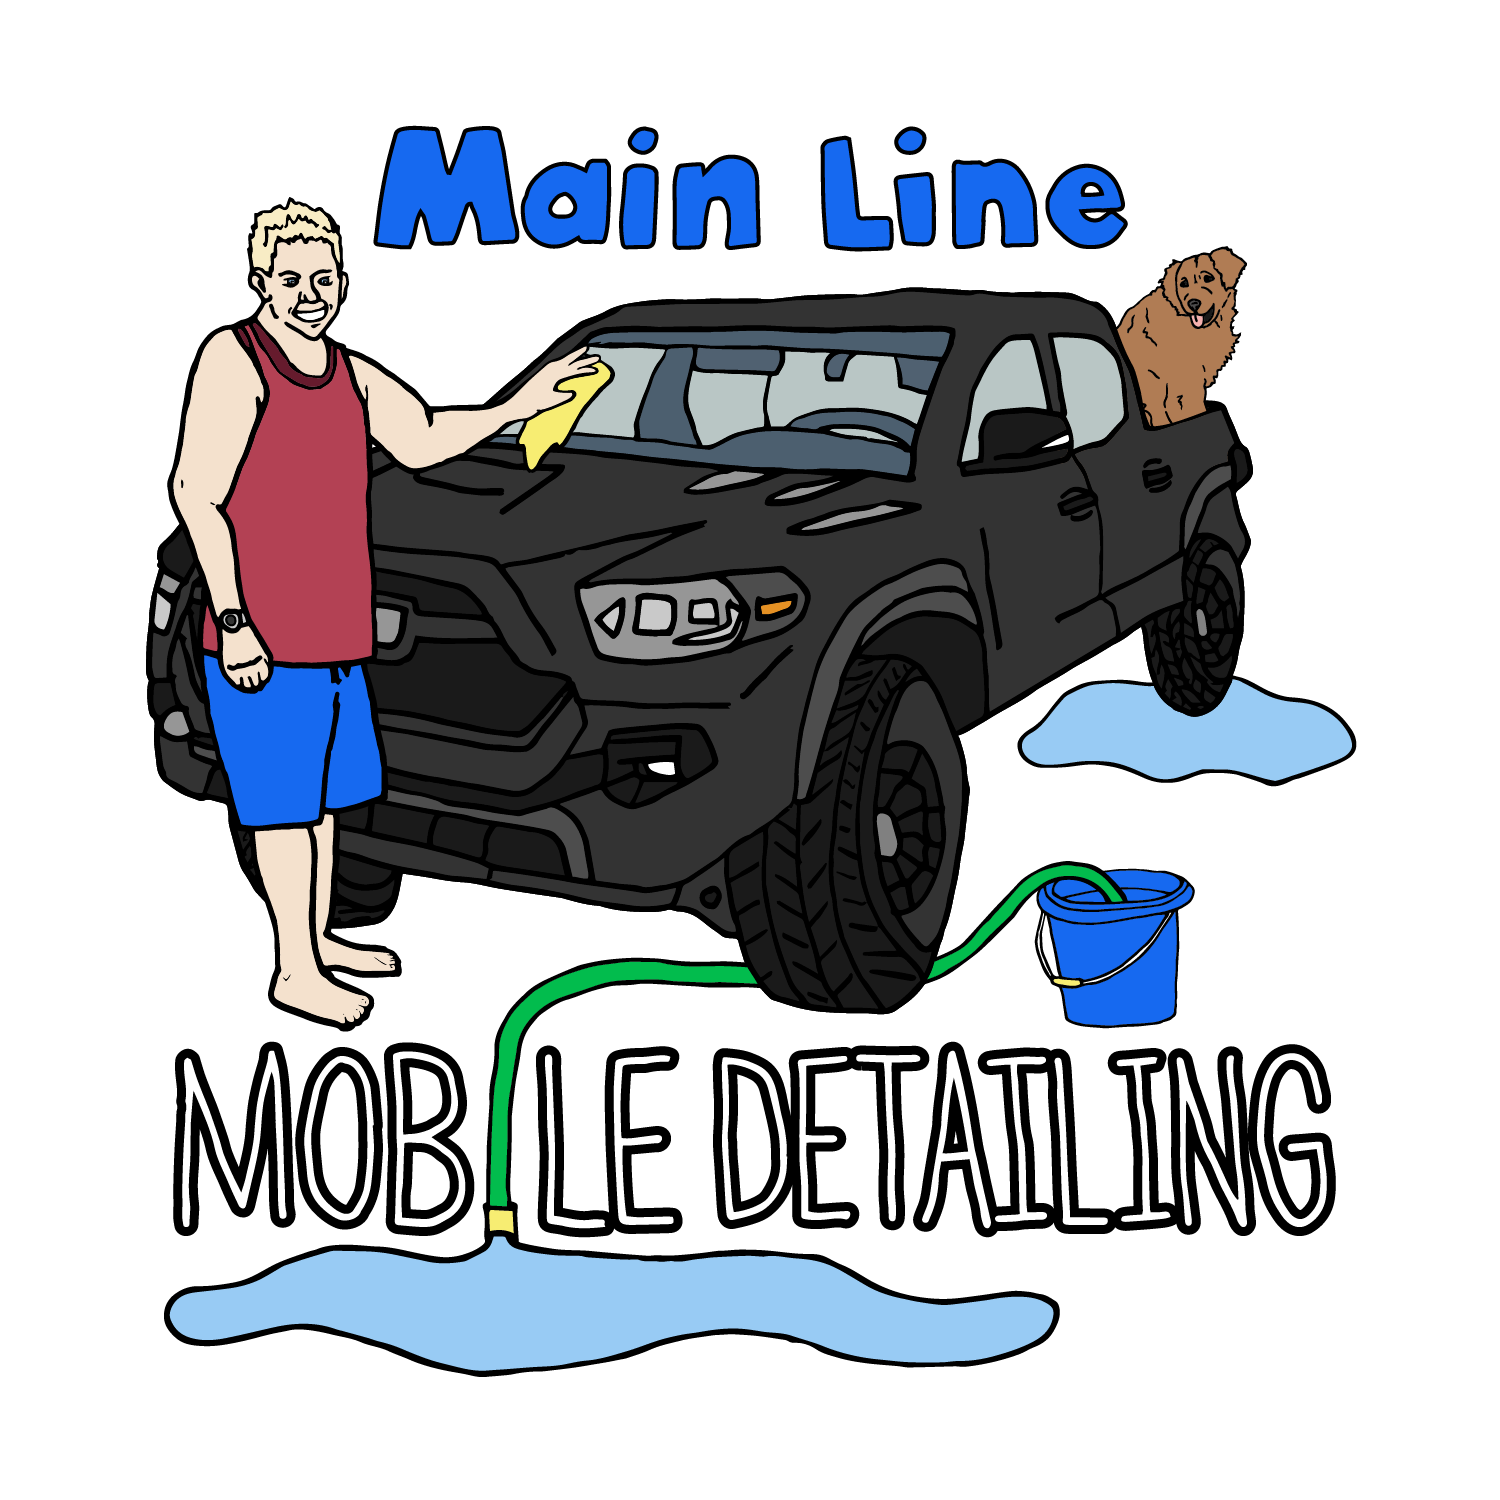 Main Line Mobile Detailing